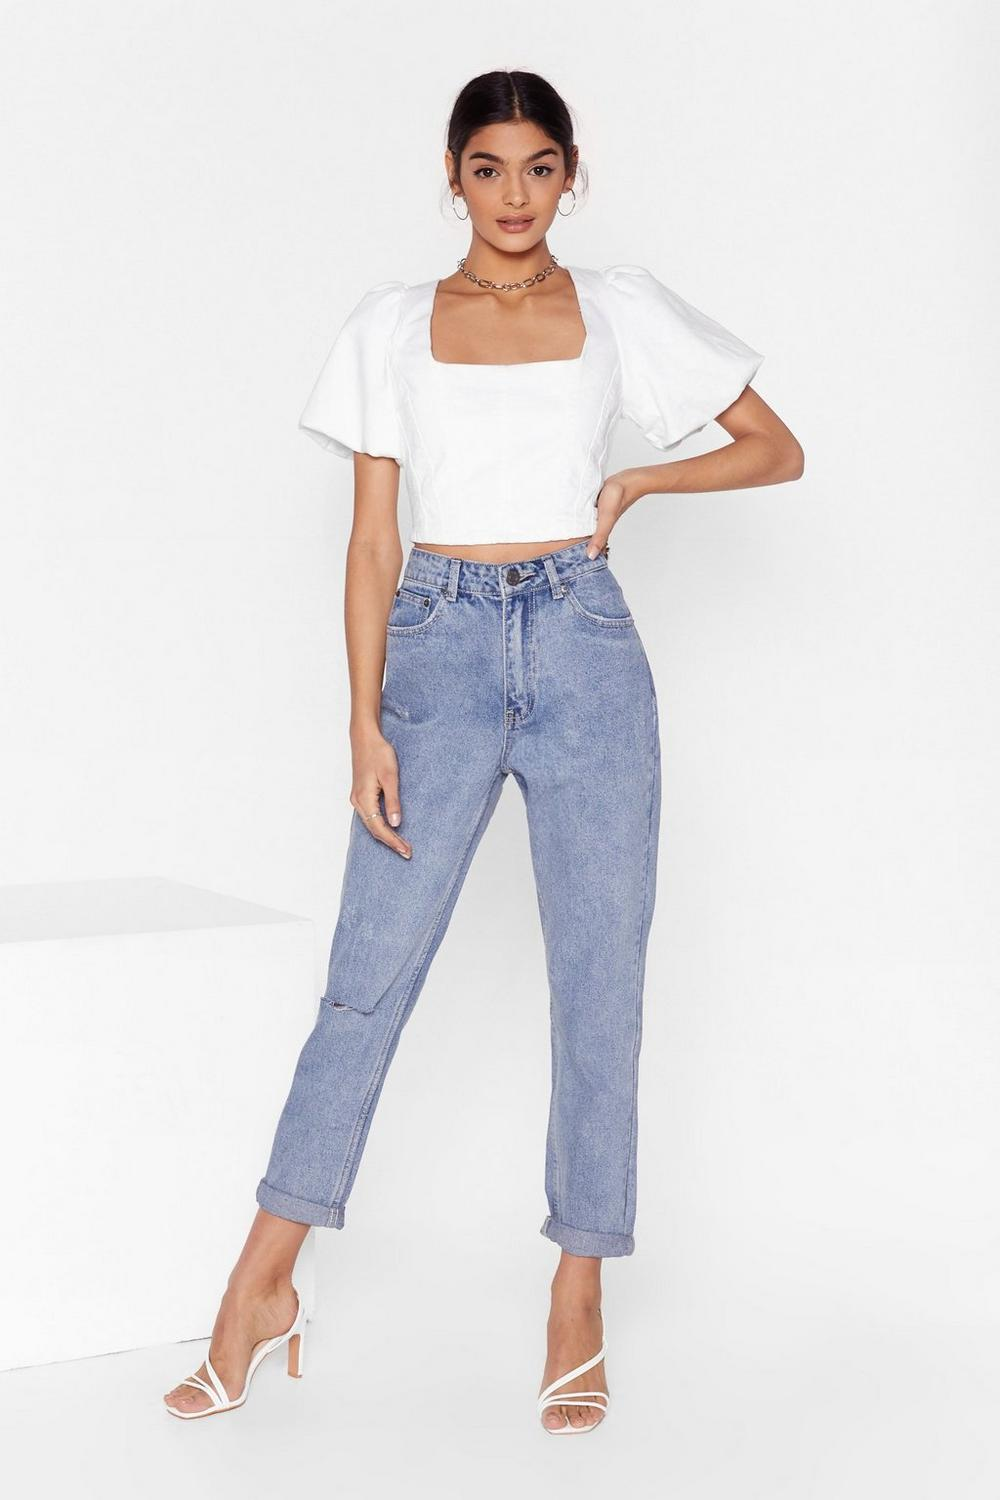 Shouldn't Have Shred It Distressed Denim Jeans by Nasty Gal